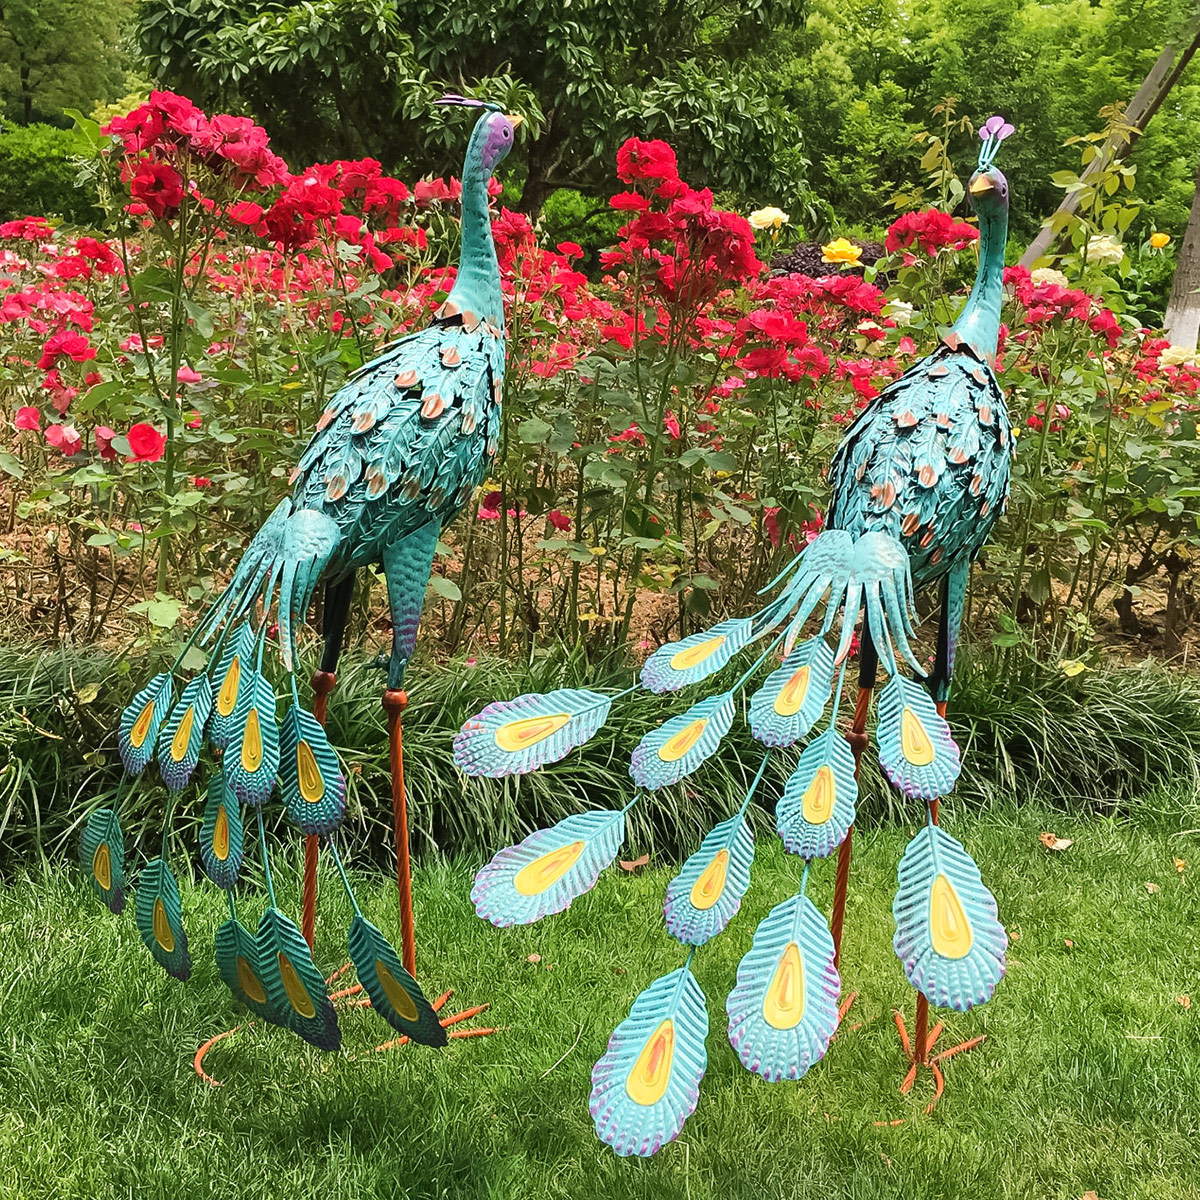 Stsatuette For Outdoor Ponds: Peacock Lawn Ornaments Yard Decoration Animals Garden